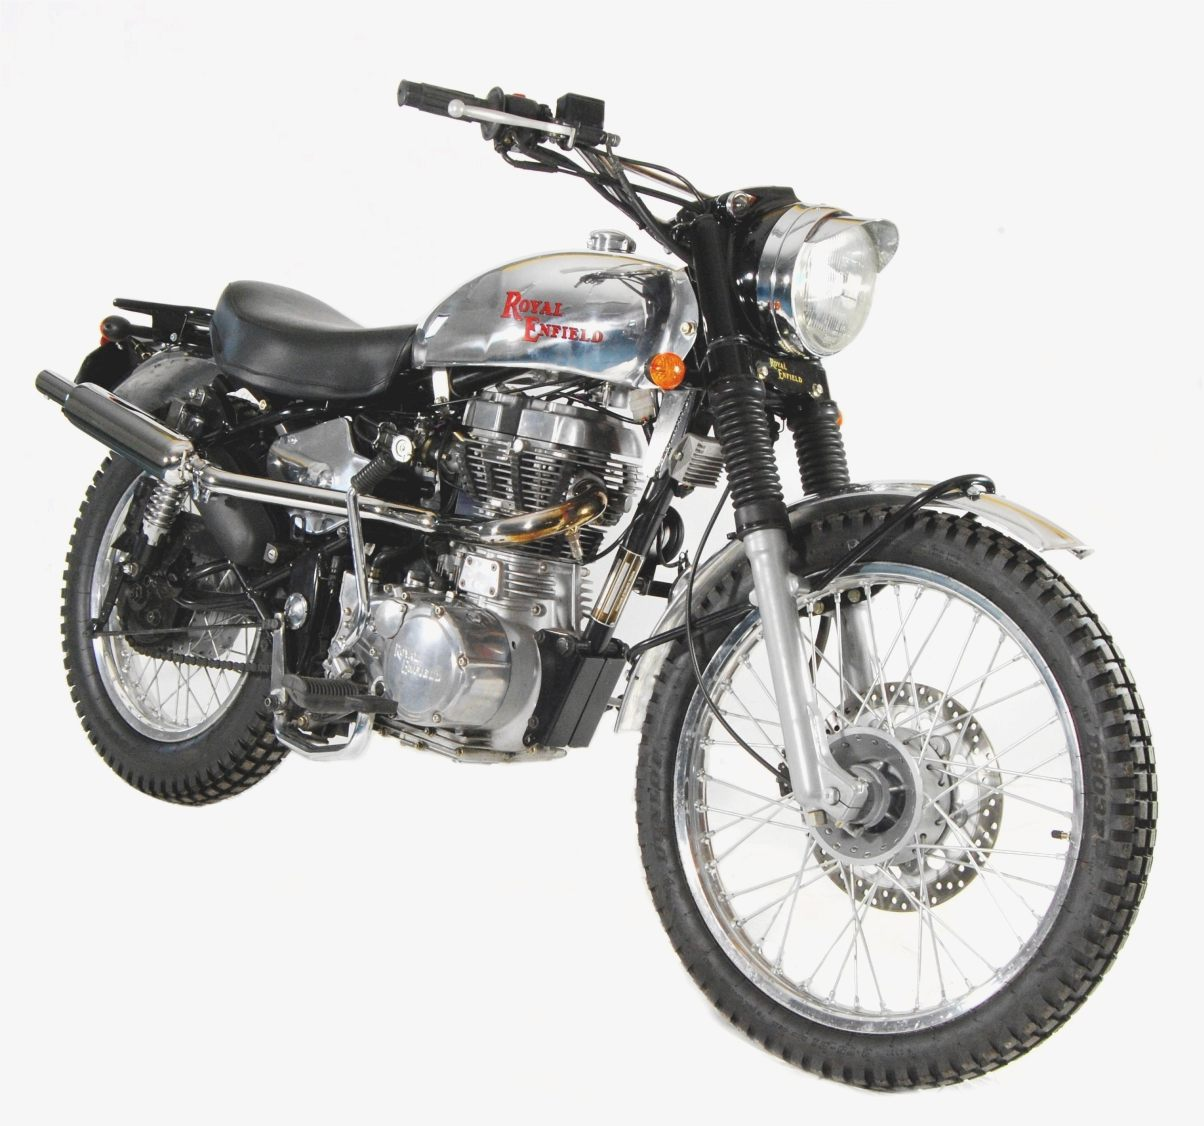 Royal Enfield Bullet 500 Trial Trail 2003 images #123197